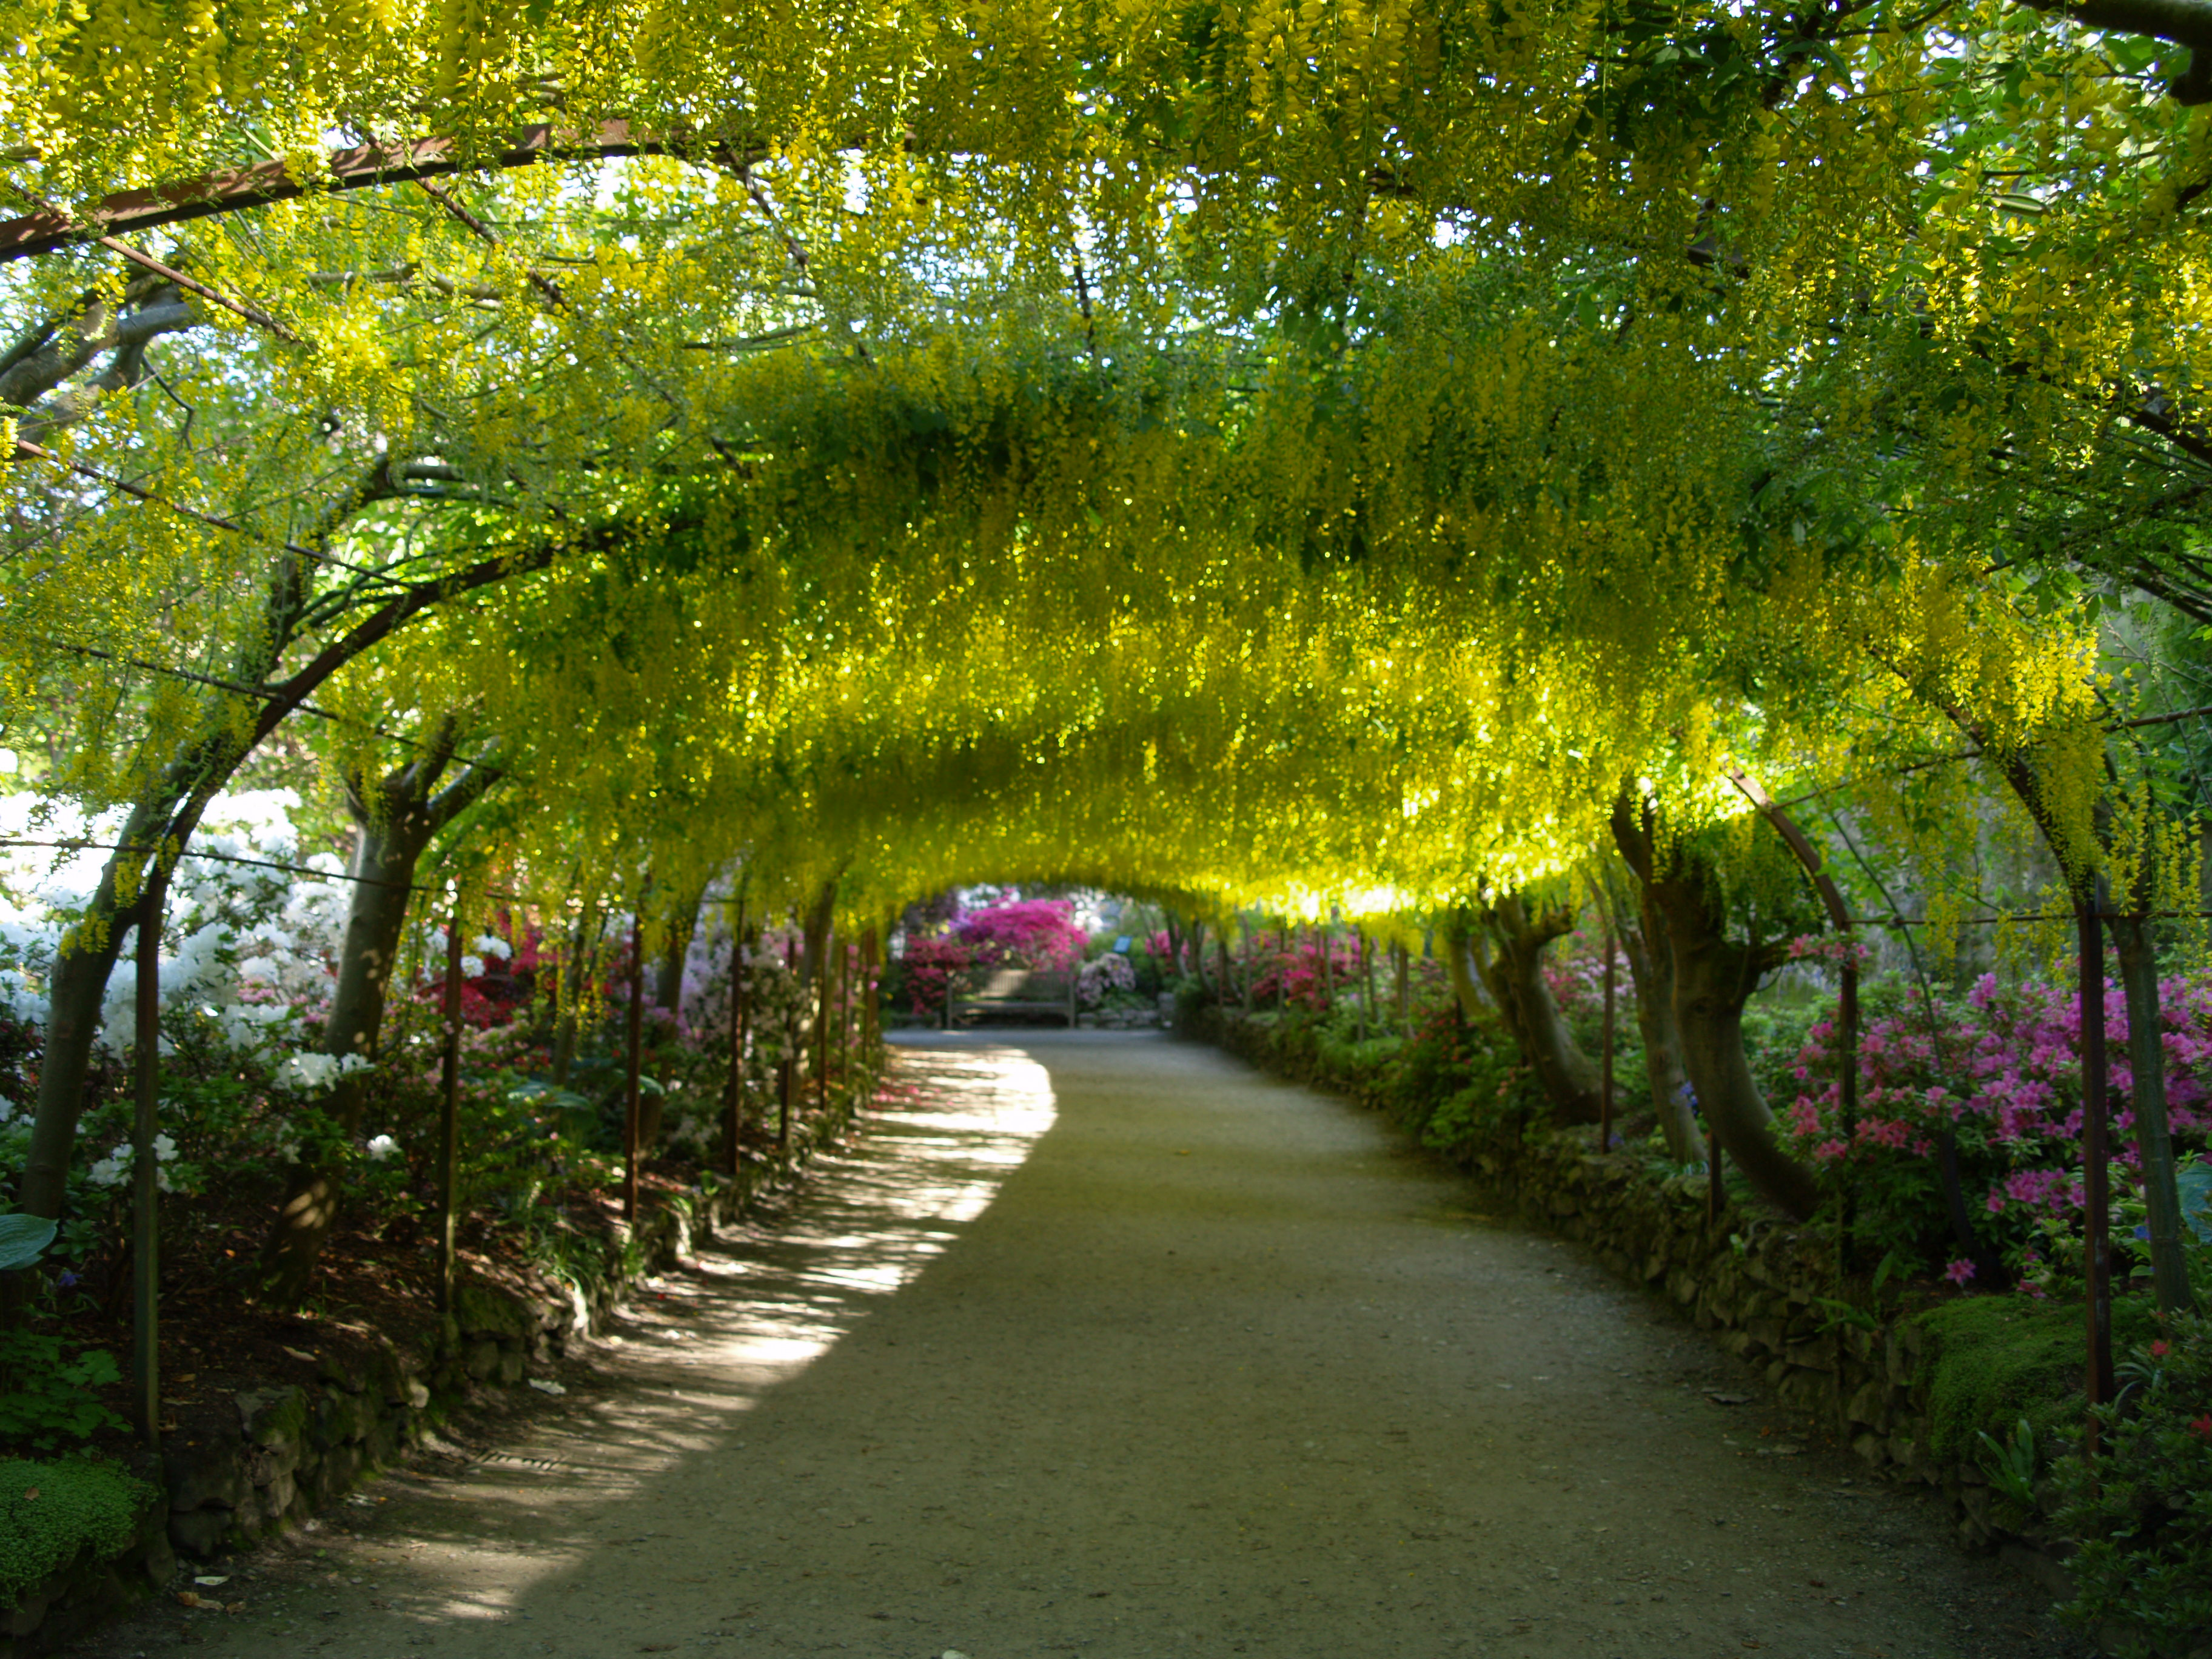 Ravishing Filelaburnum Arch Bodnant Gardenjpg  Wikimedia Commons With Excellent Filelaburnum Arch Bodnant Gardenjpg With Charming Kingsway Covent Garden Also Highline Garden Nyc In Addition Good Restaurants Near Covent Garden And Devonshire Gardens Glasgow As Well As My English Garden Additionally Academy Gardens From Commonswikimediaorg With   Excellent Filelaburnum Arch Bodnant Gardenjpg  Wikimedia Commons With Charming Filelaburnum Arch Bodnant Gardenjpg And Ravishing Kingsway Covent Garden Also Highline Garden Nyc In Addition Good Restaurants Near Covent Garden From Commonswikimediaorg